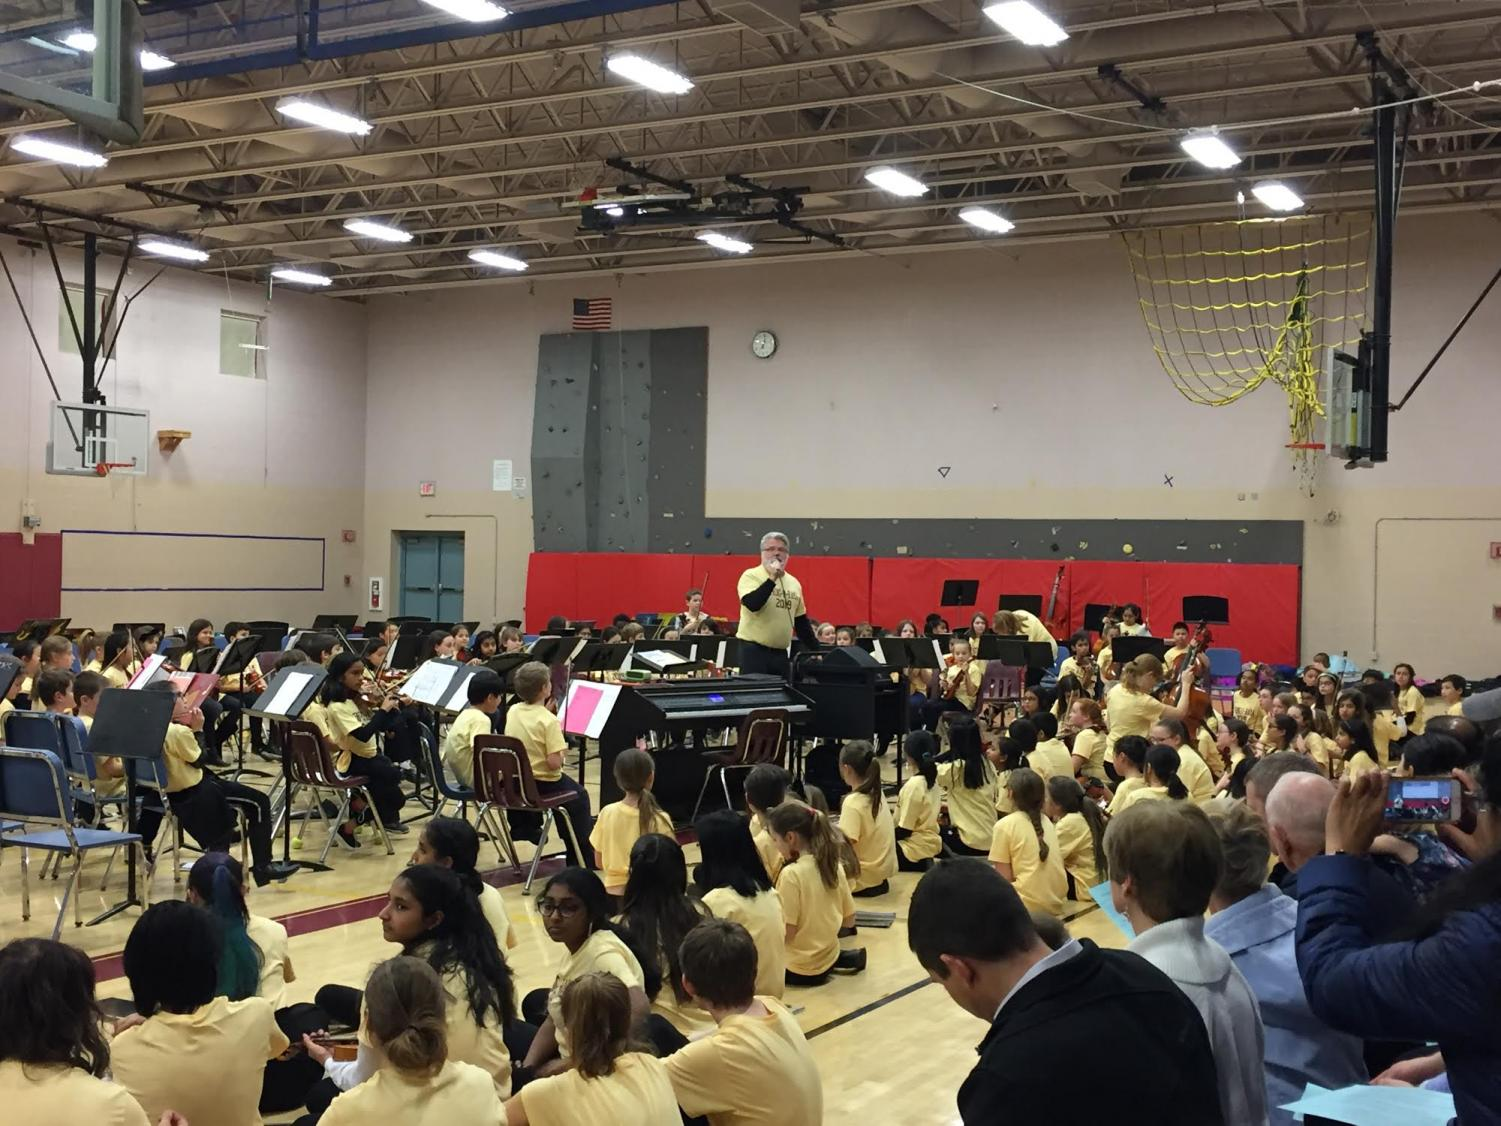 String-O-Rama gave string musicians from grades three to 12 the unique opportunity to perform together for an audience on January 15.